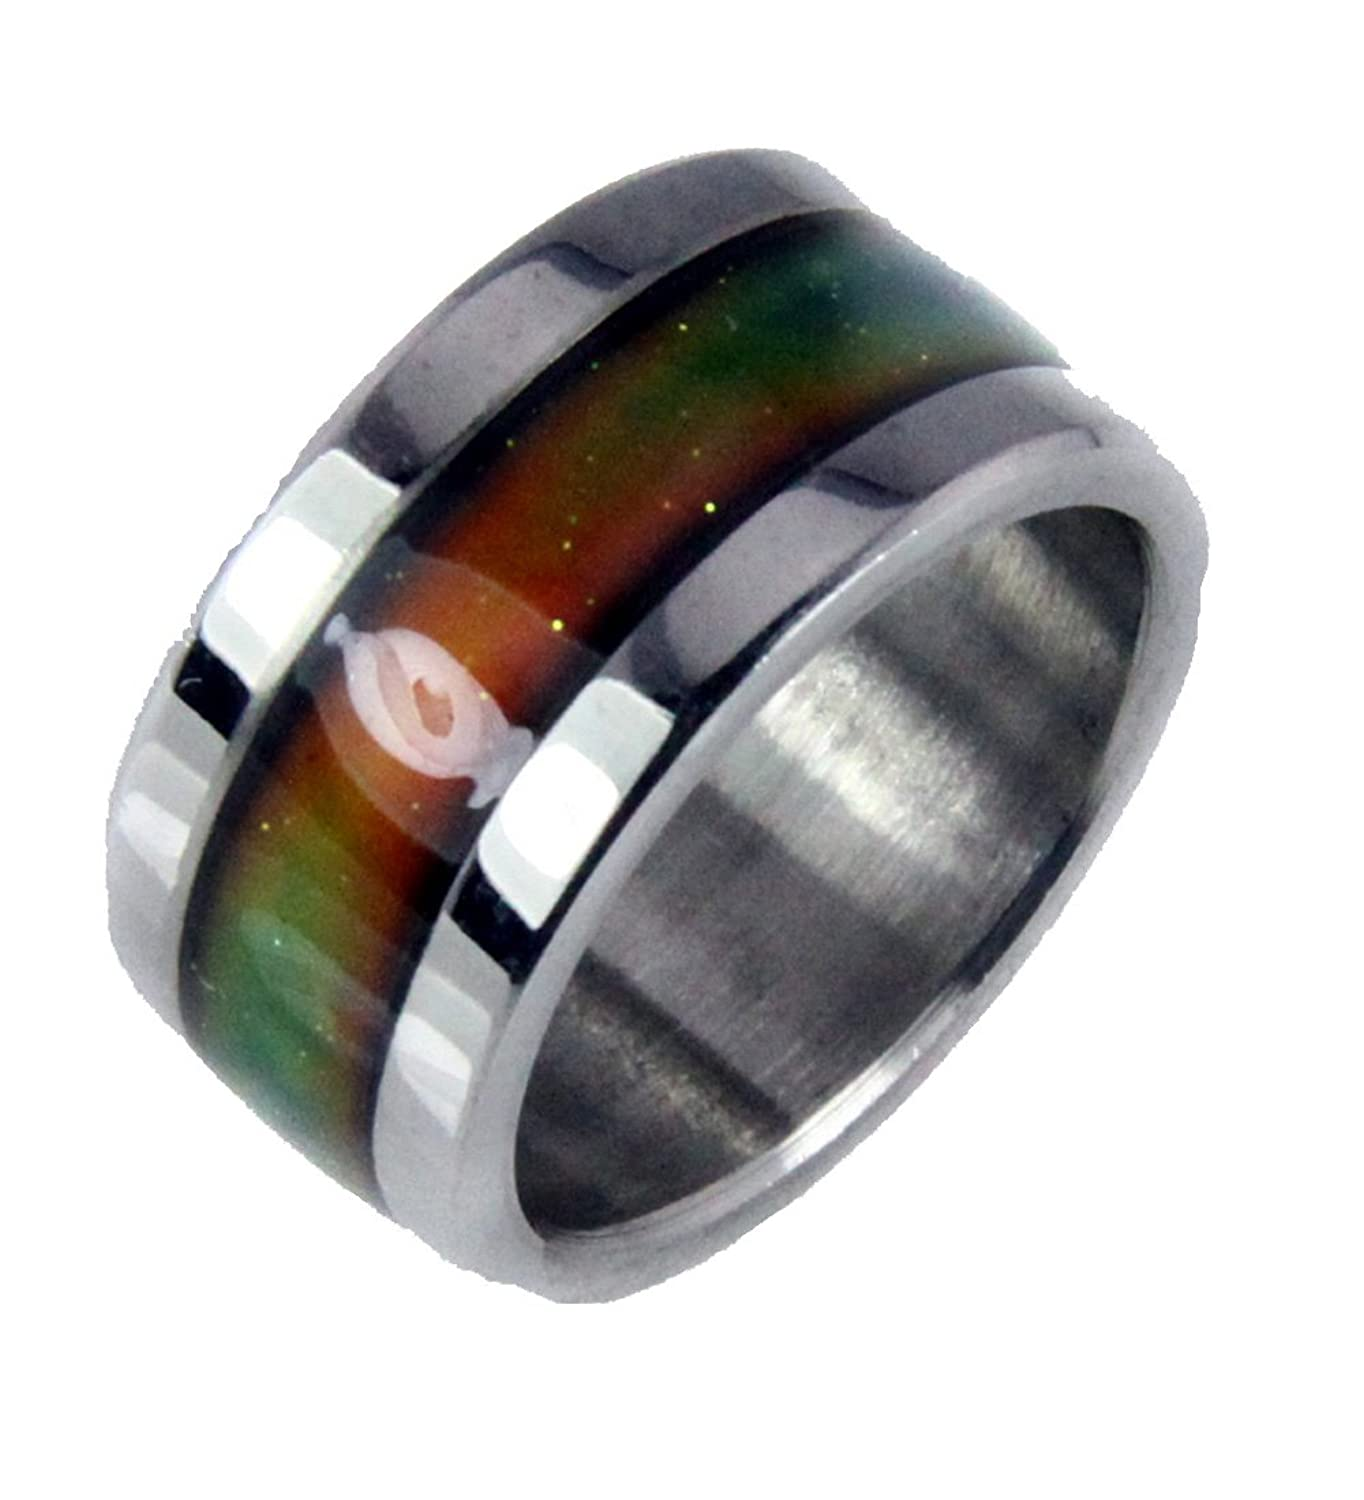 Amazon s16 stainless steel mood ring endless band rainbow amazon s16 stainless steel mood ring endless band rainbow colors jewelry nvjuhfo Gallery